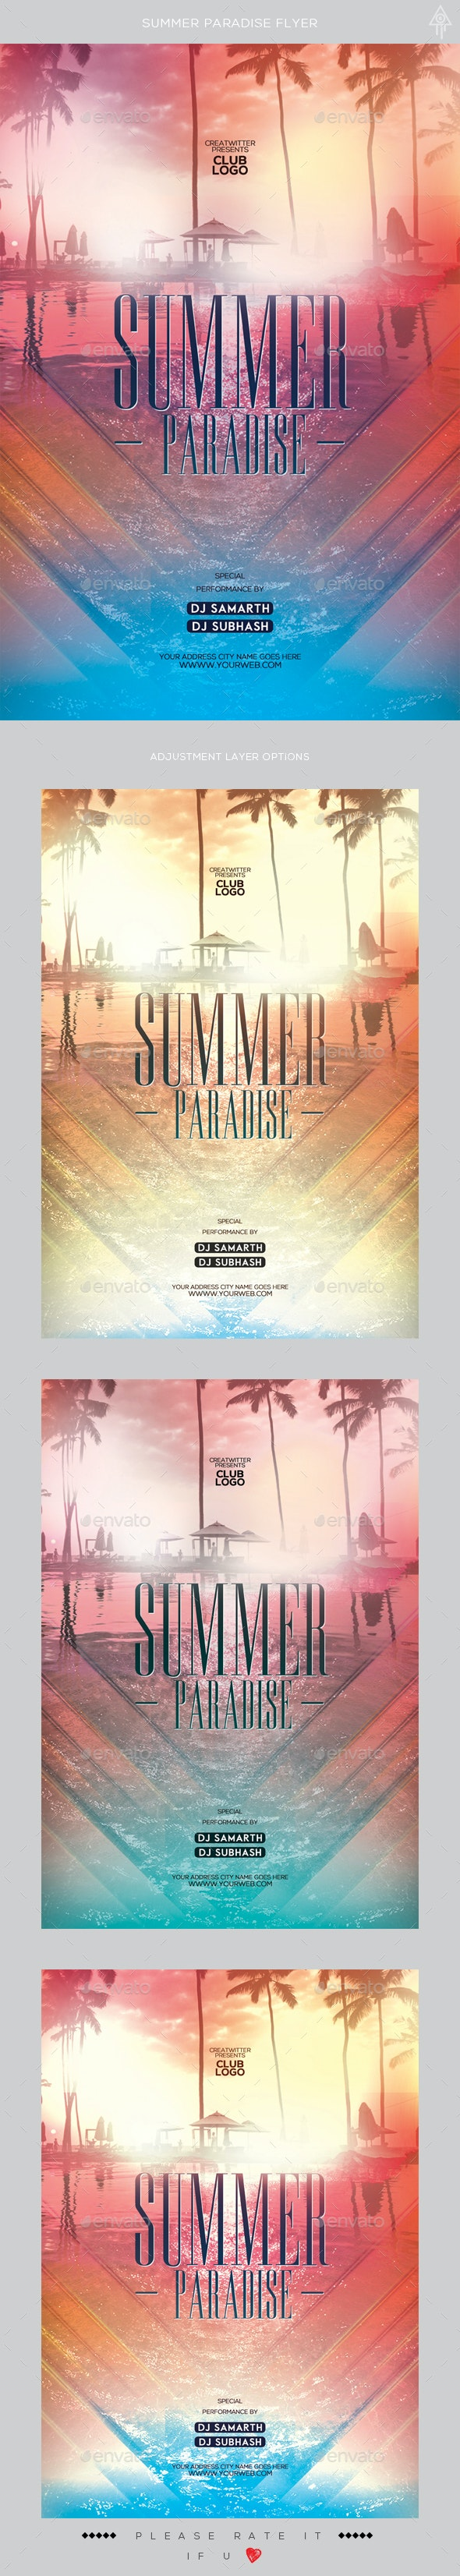 Summer Paradise Flyer - Clubs & Parties Events